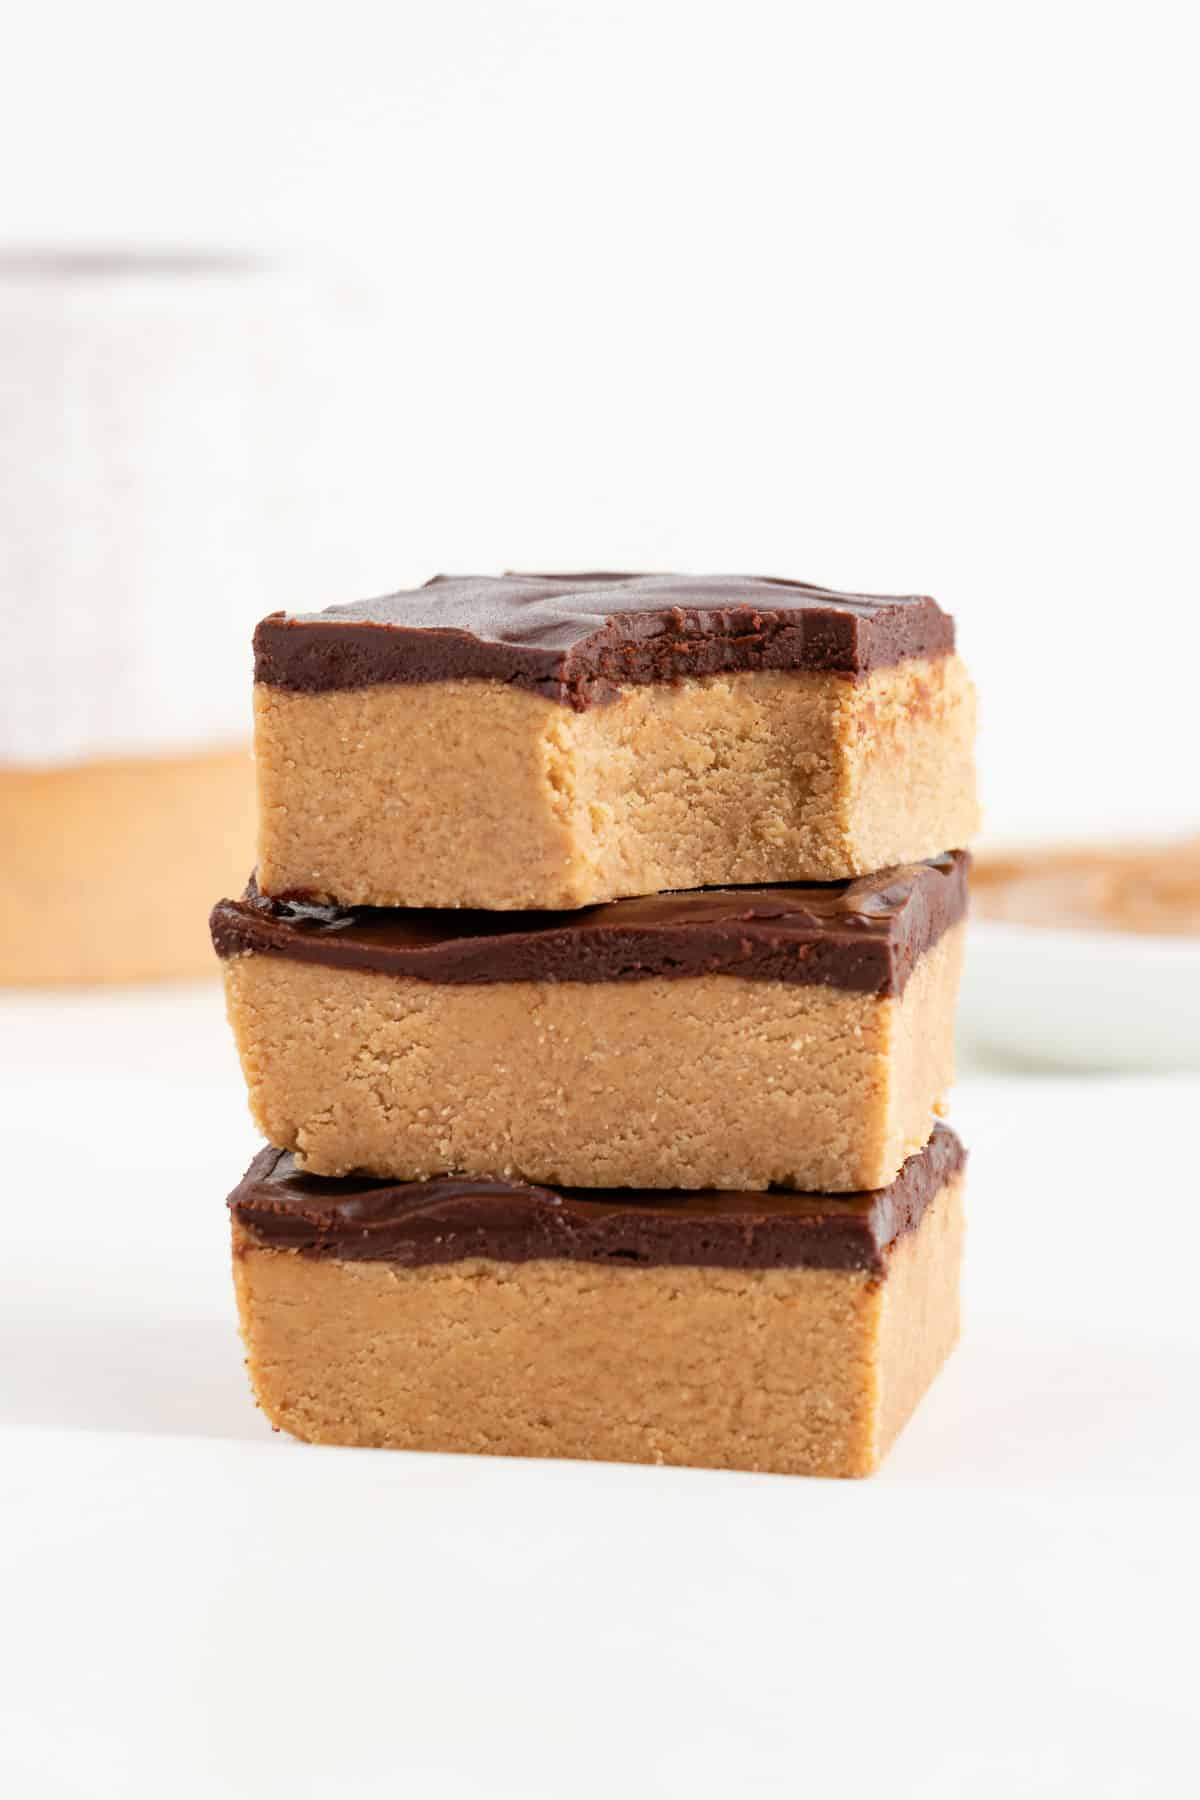 three cacao and nut butter dessert bars stacked with a bite taken out of the top one